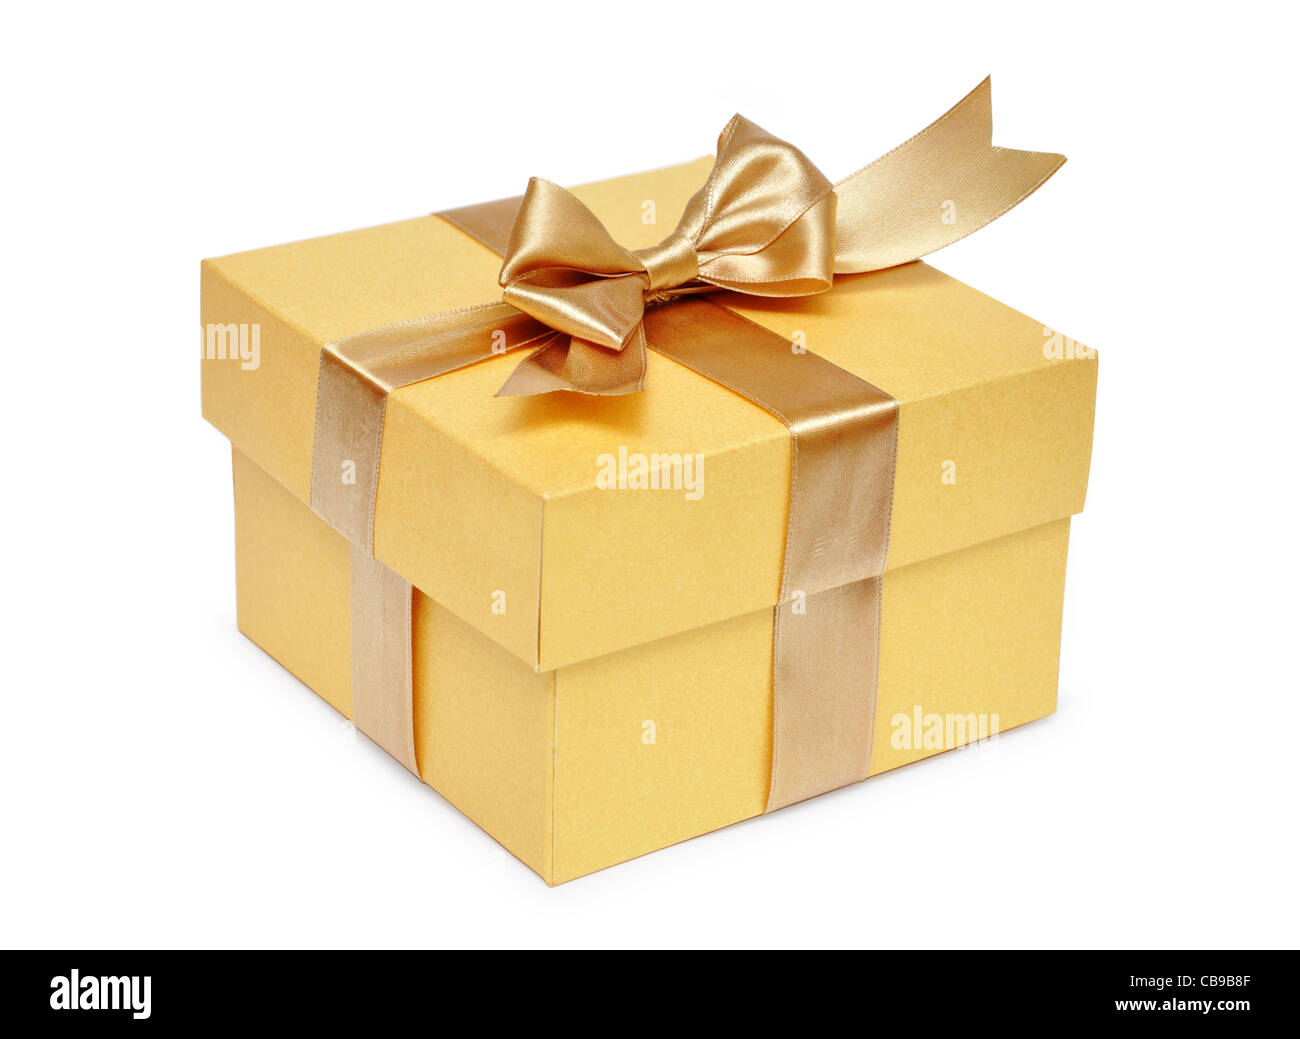 Golden gift box with golden ribbon over white background - Stock Image